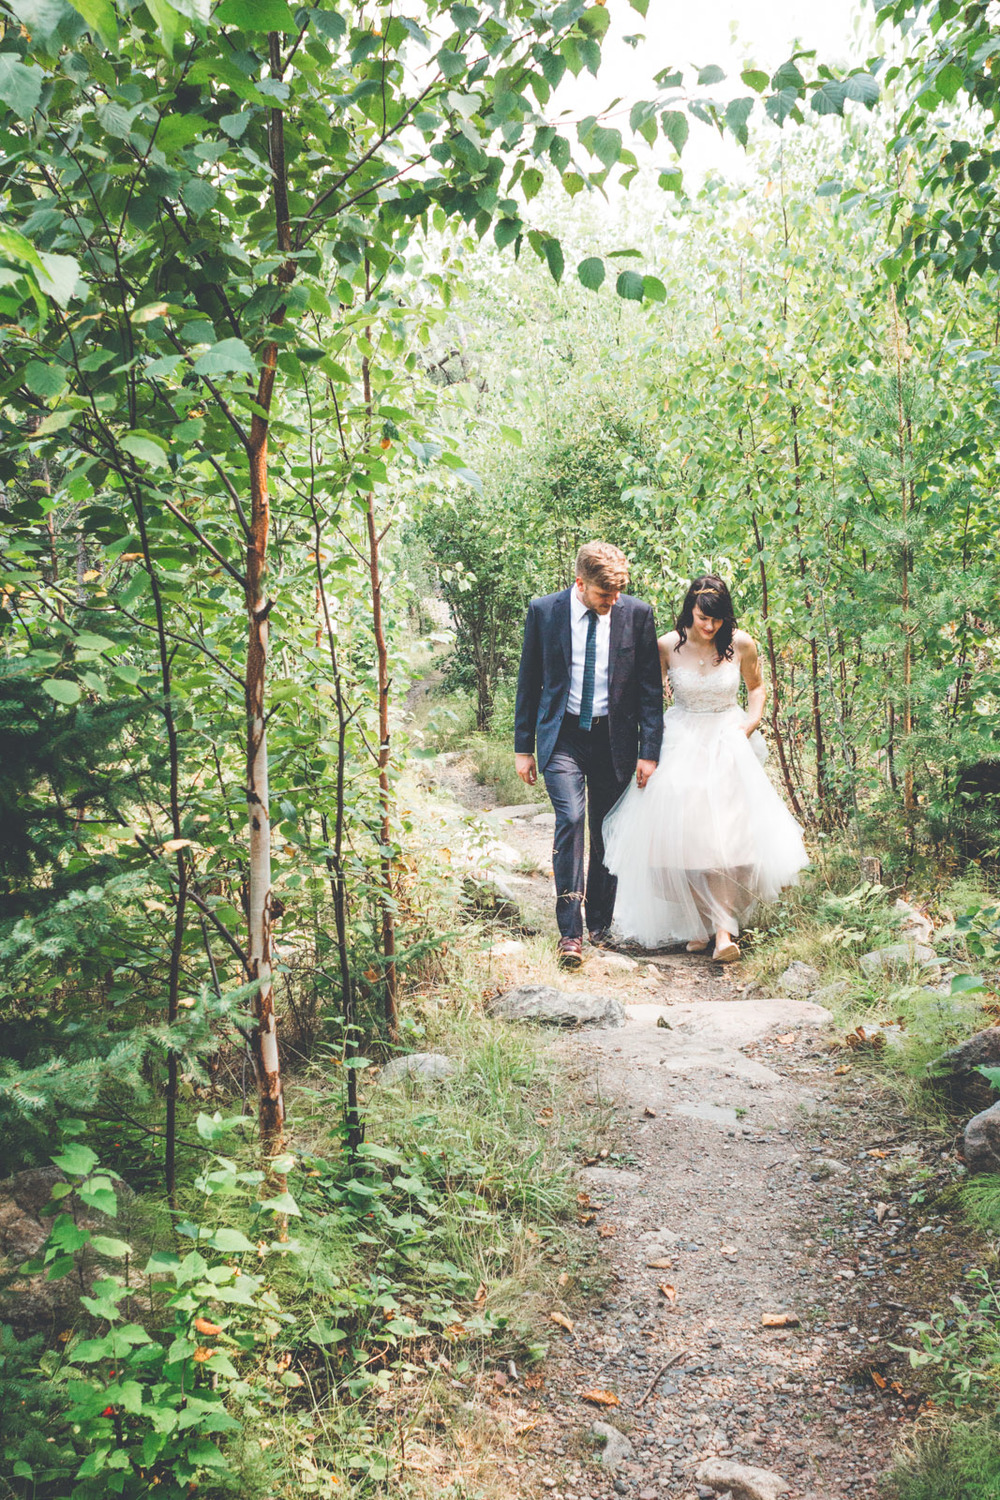 ANNA & CARL: MARRIED